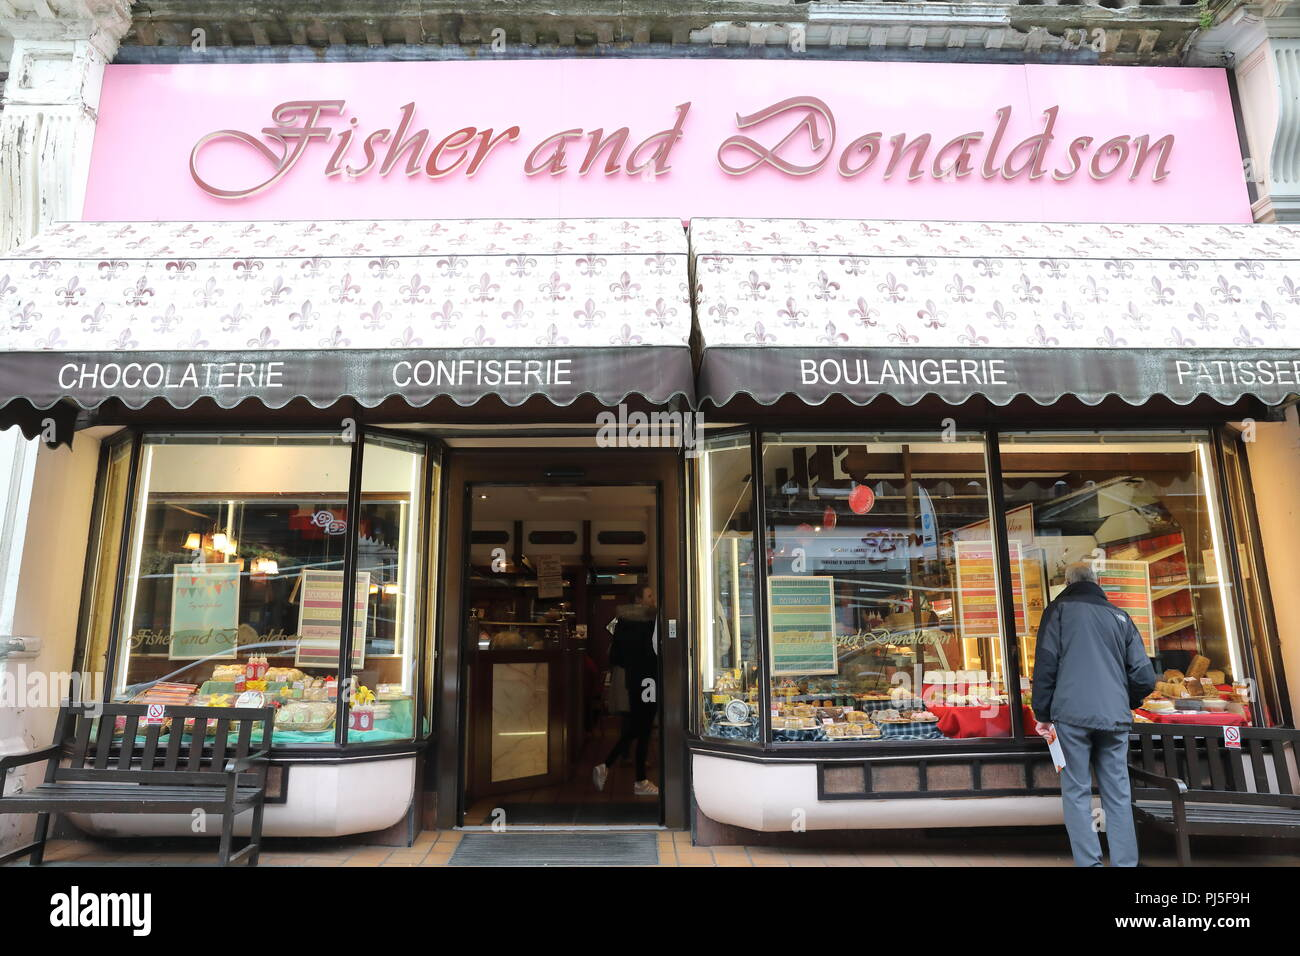 Fisher and Donaldson Royal appointed bakery and cafe on Whitehall Street, in Dundee, Scotland, UK - Stock Image